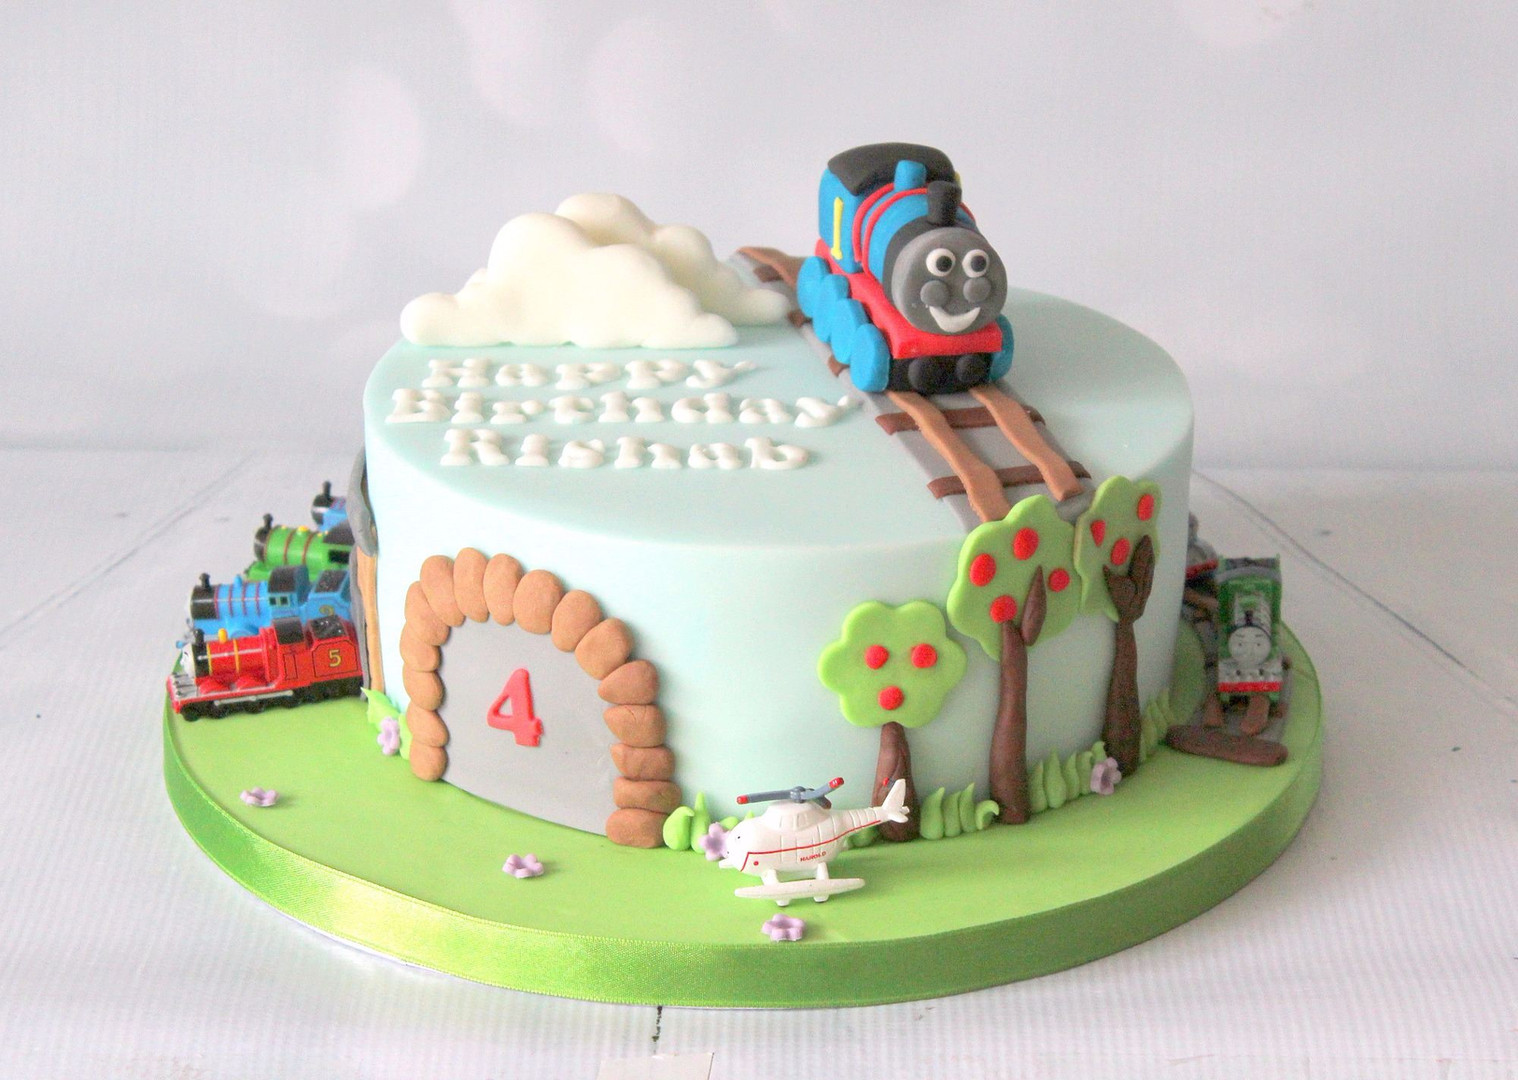 Thomas the Tank Engine cake with figures